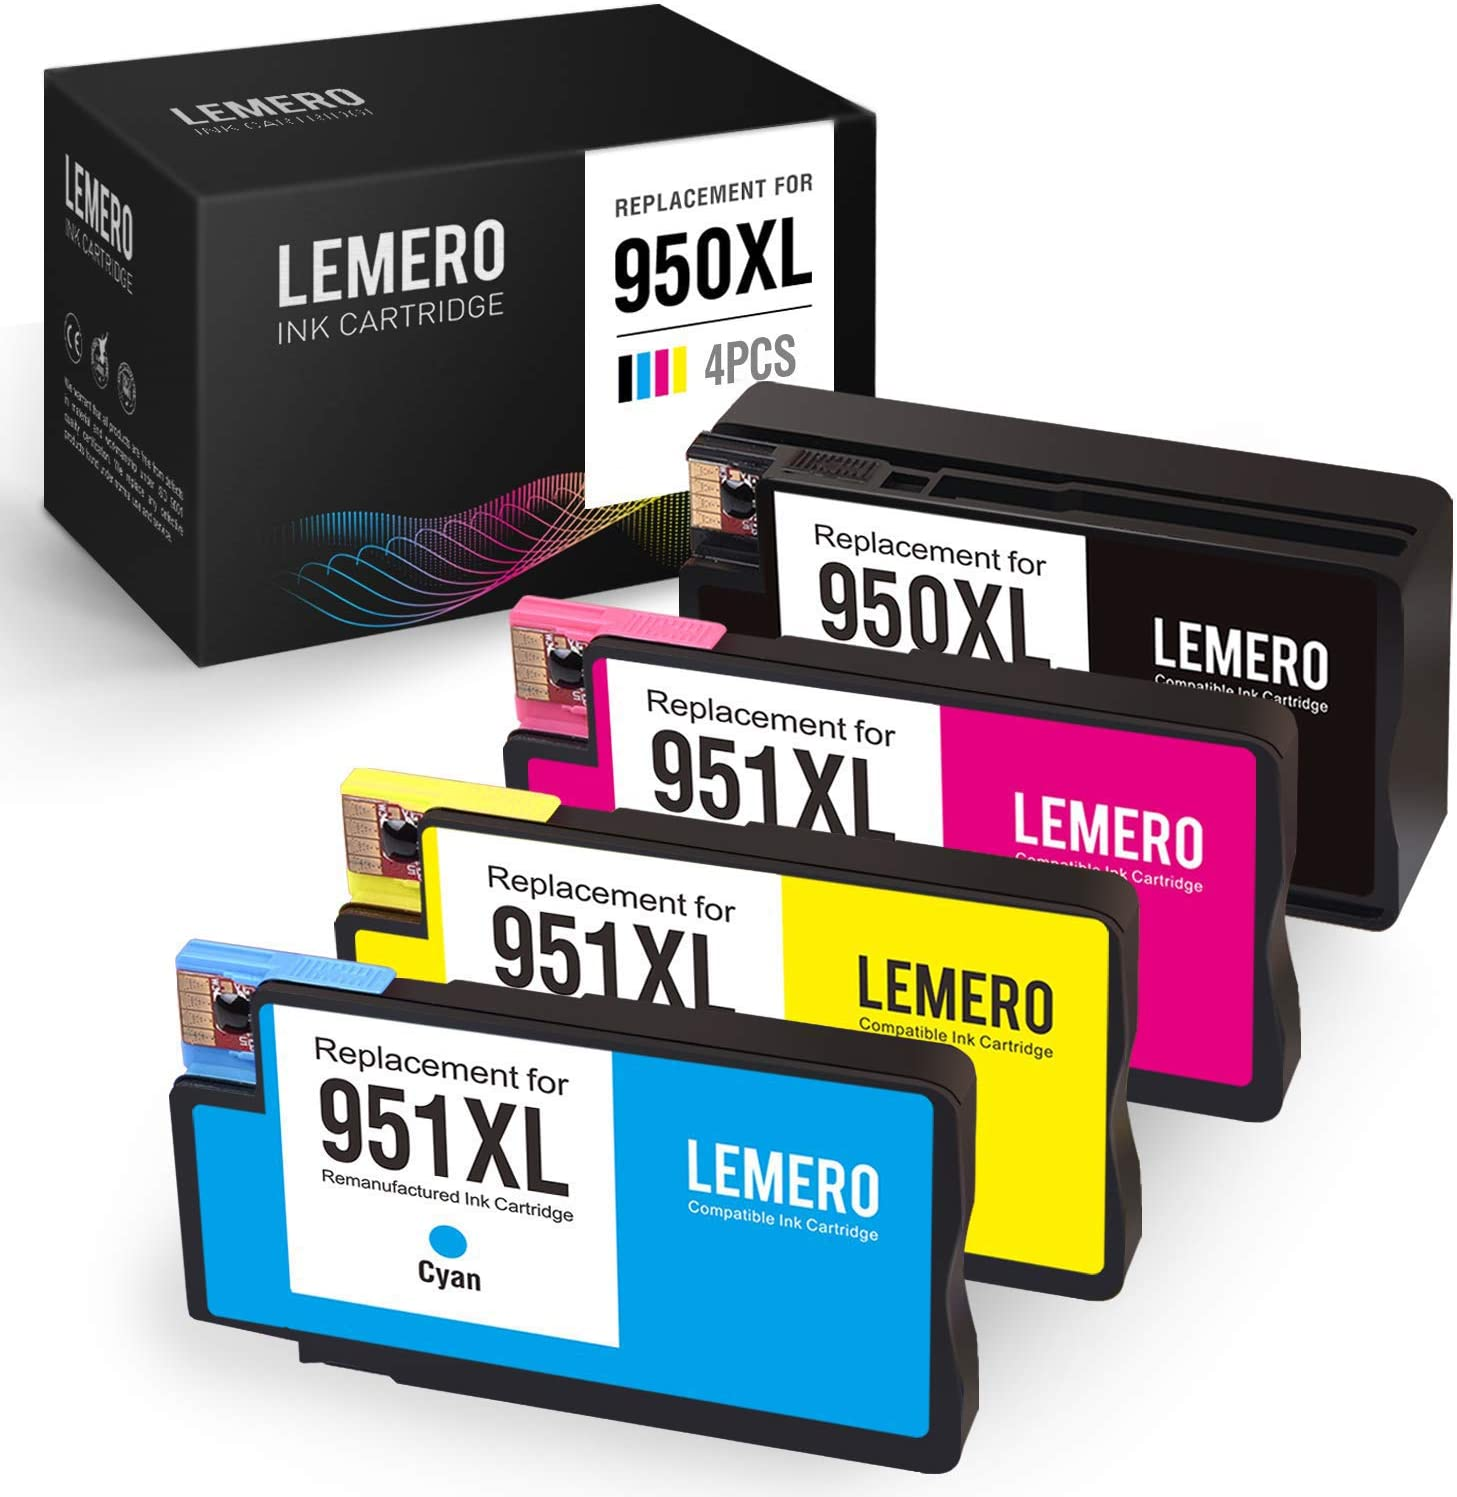 LEMERO Compatible Ink Cartridge Replacement for HP 950XL 951XL for OfficeJet Pro 8610 8600 8620 8630 8100 8625 8615 8640 8660 251dw 276dw 271dw (1 Black, 1 Cyan, 1 Magenta, 1 Yellow, 4 Pack)